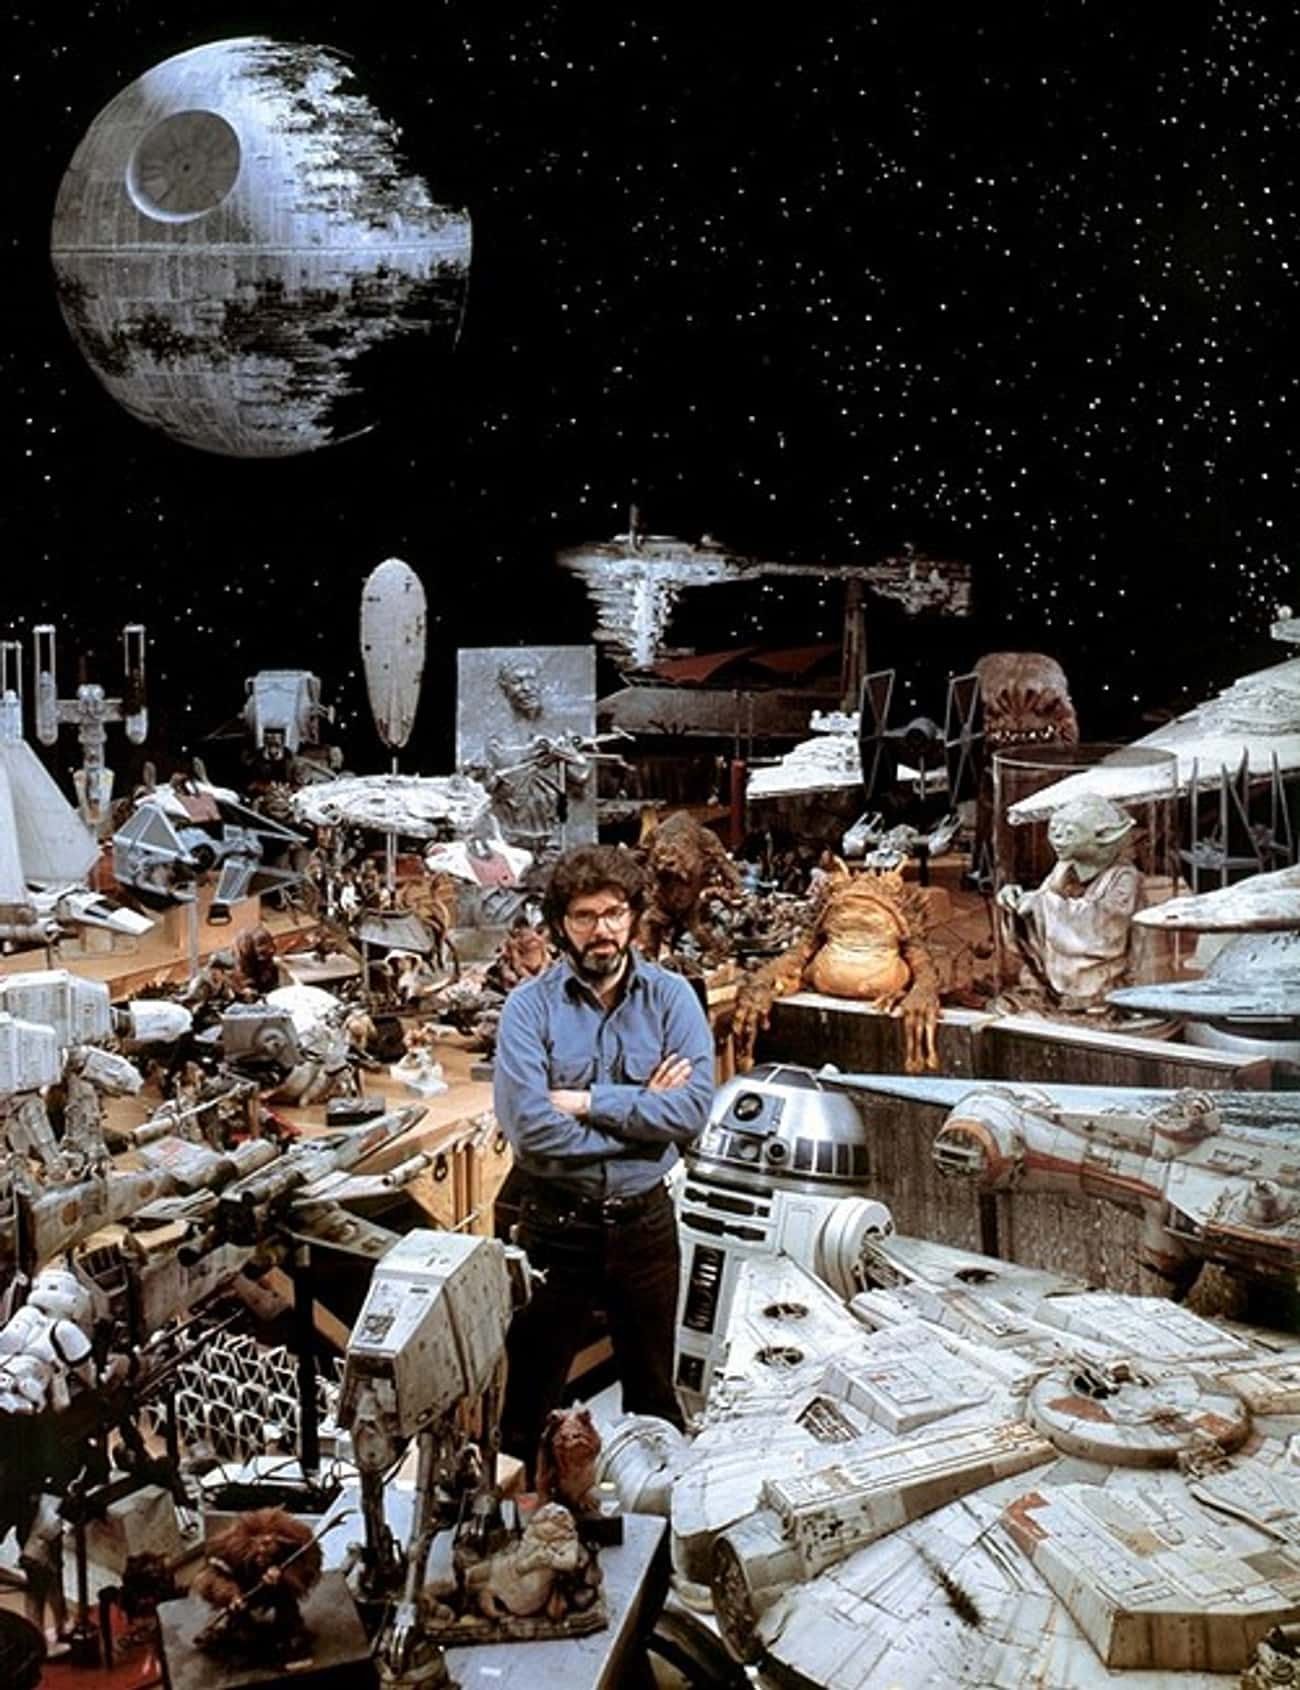 George Lucas And A Sea Of Mini is listed (or ranked) 1 on the list Rare Star Wars Behind-The-Scenes Photos